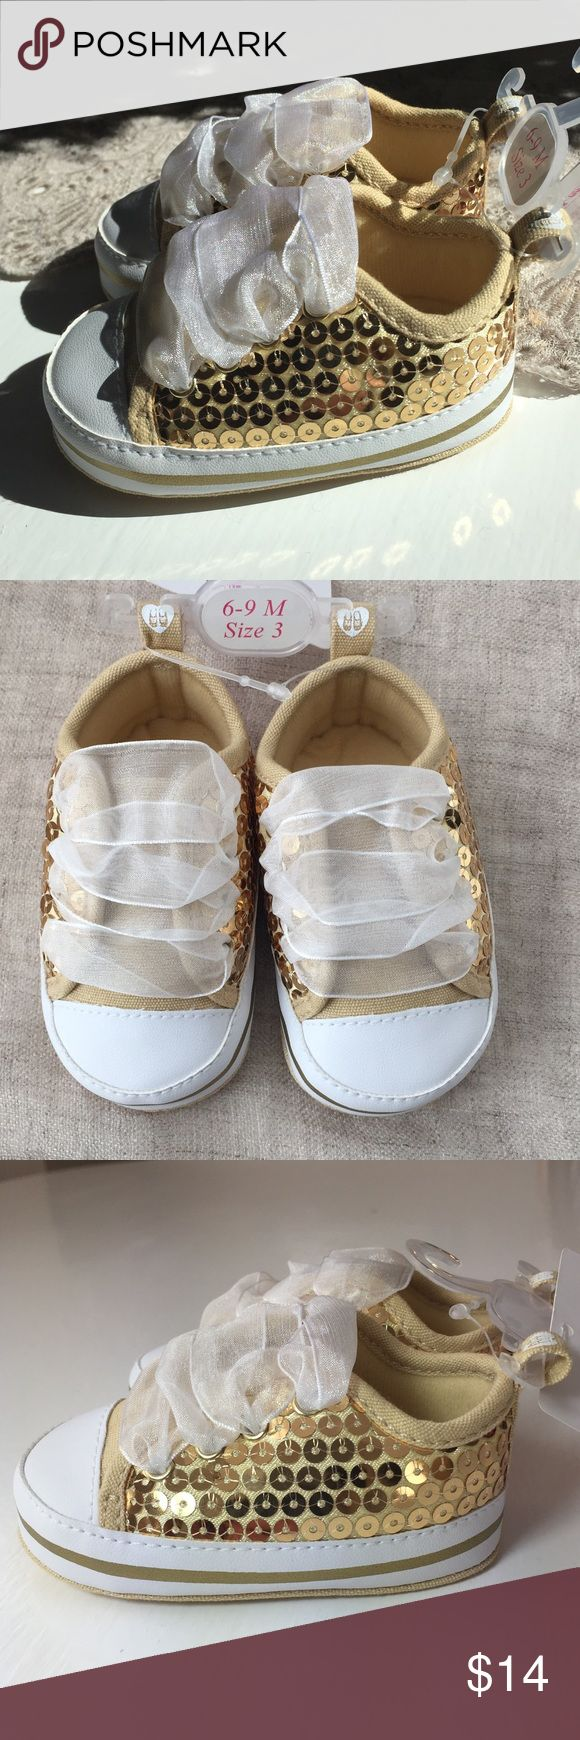 newbaby sequined shoes adorable baby sequined tennis shoes with ribbon lace ups